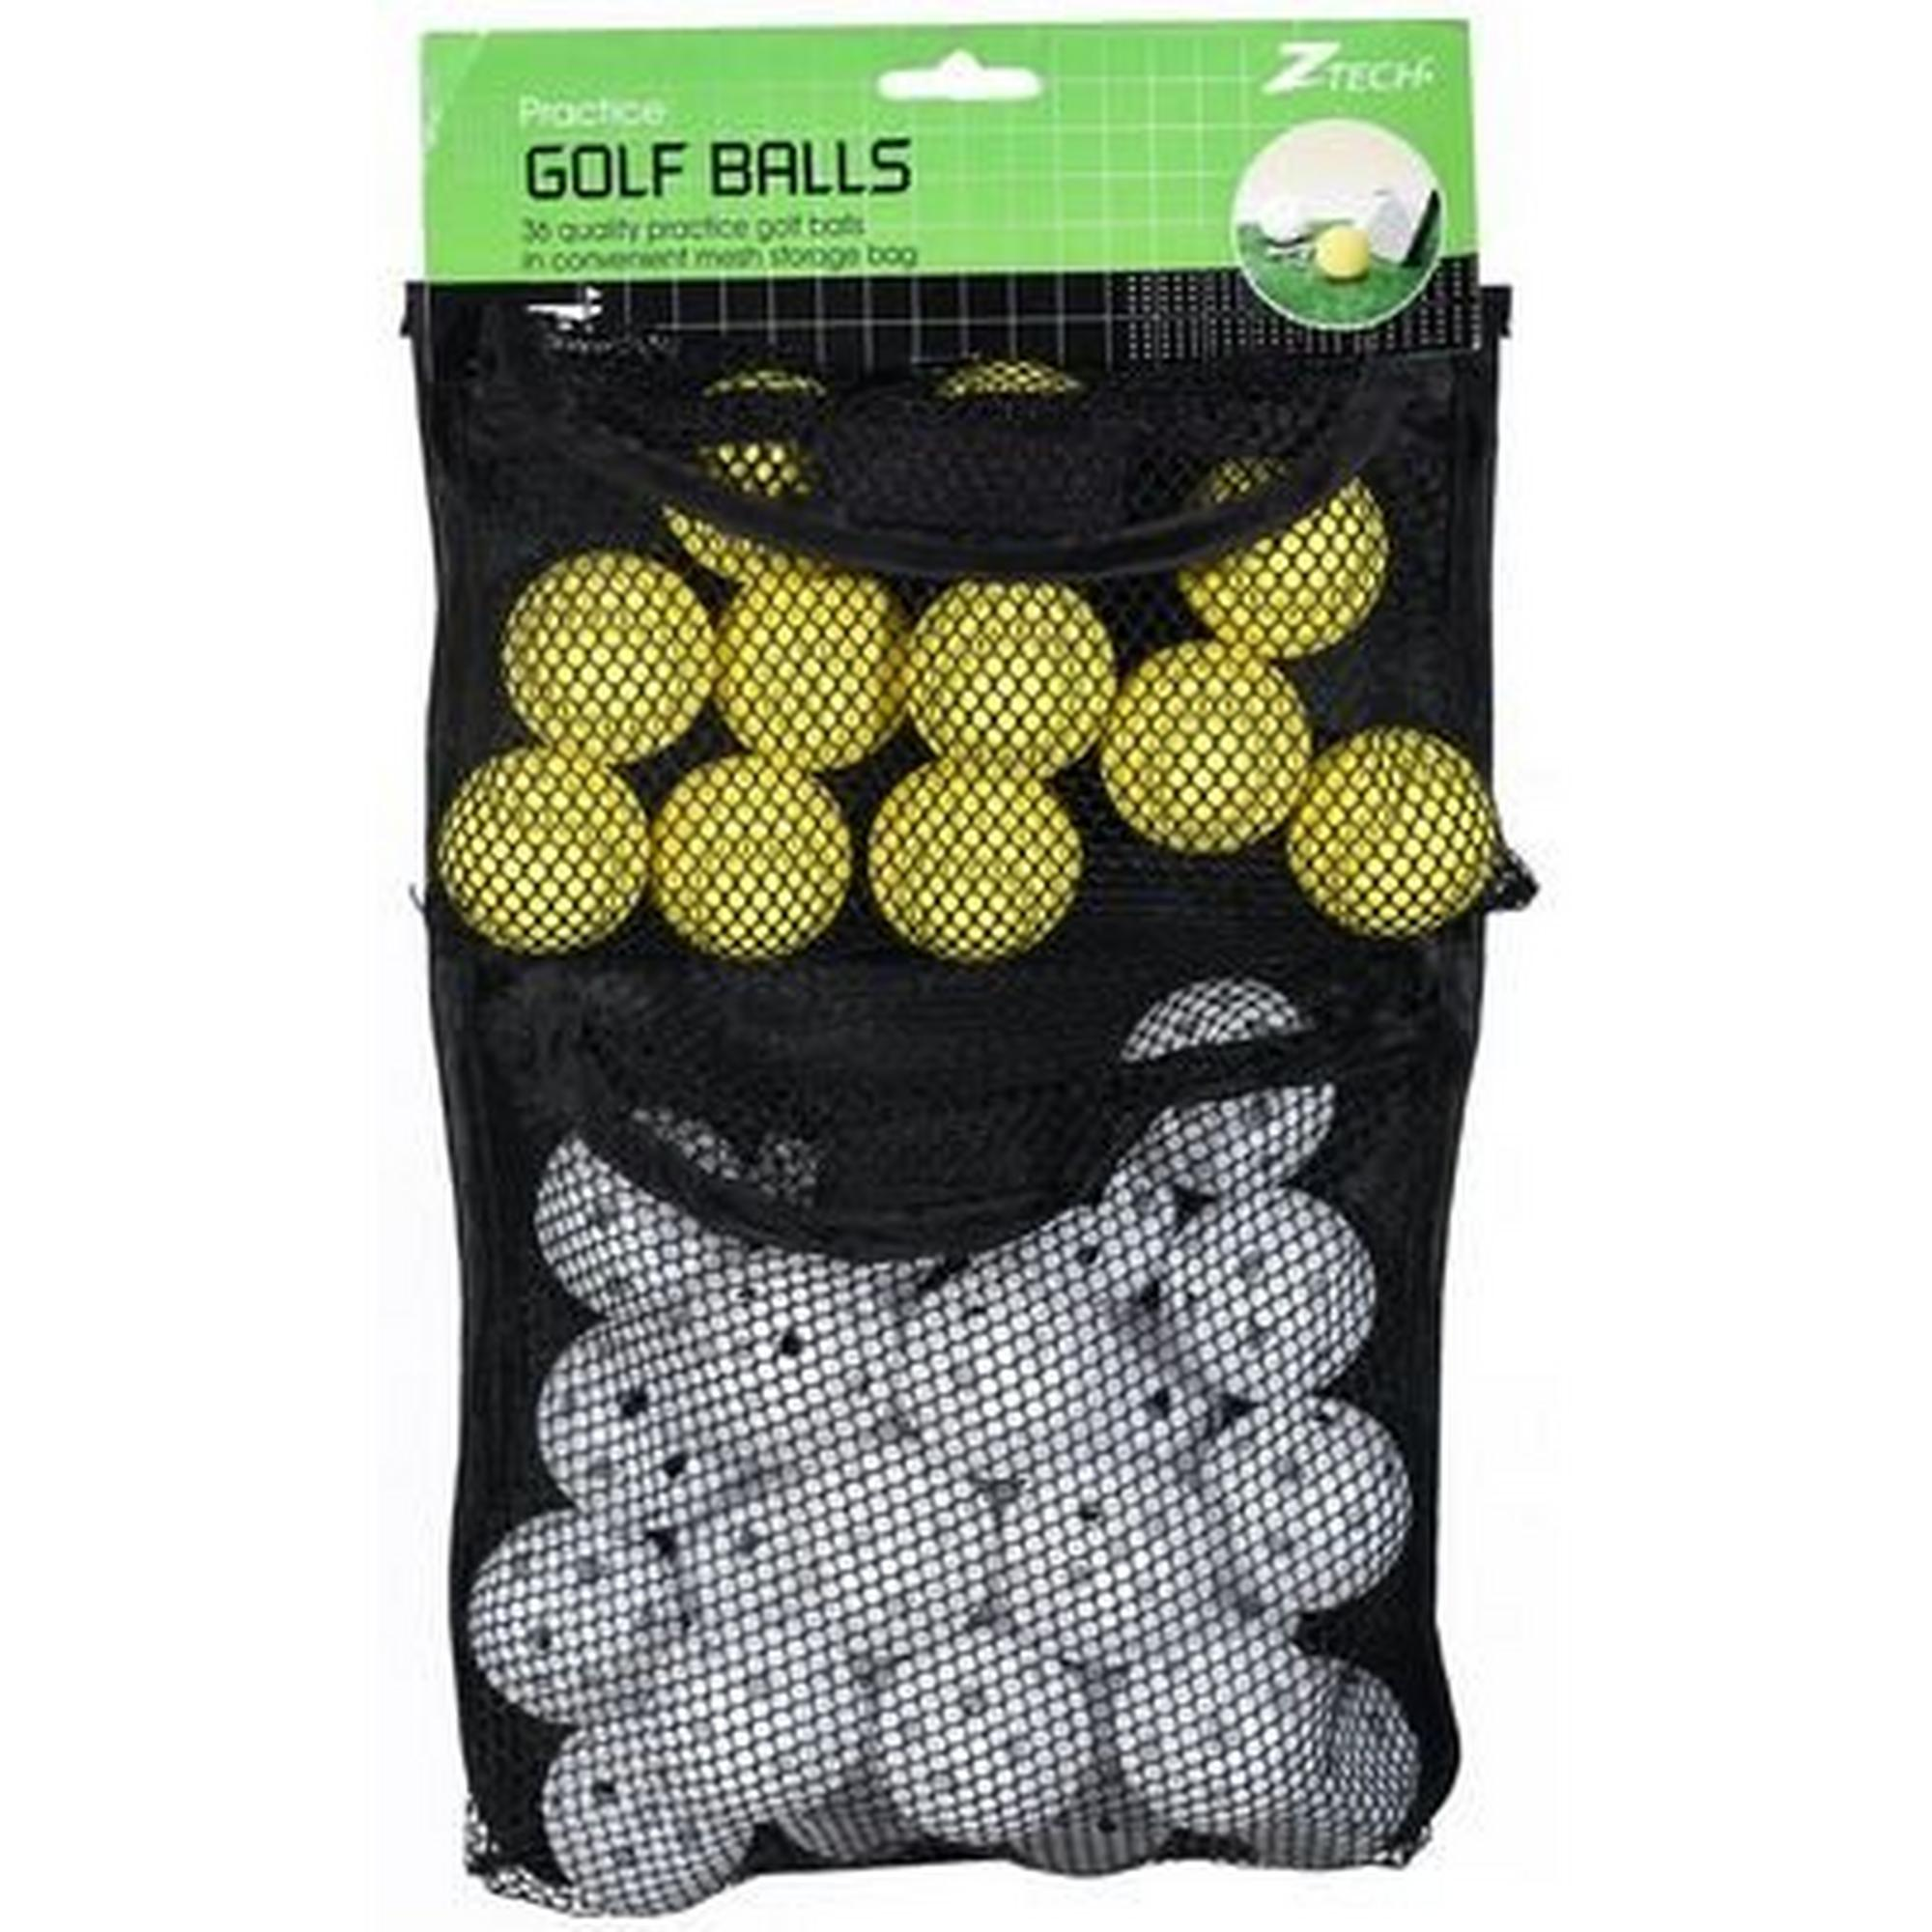 Foam and Airflow Balls in Mesh Bag